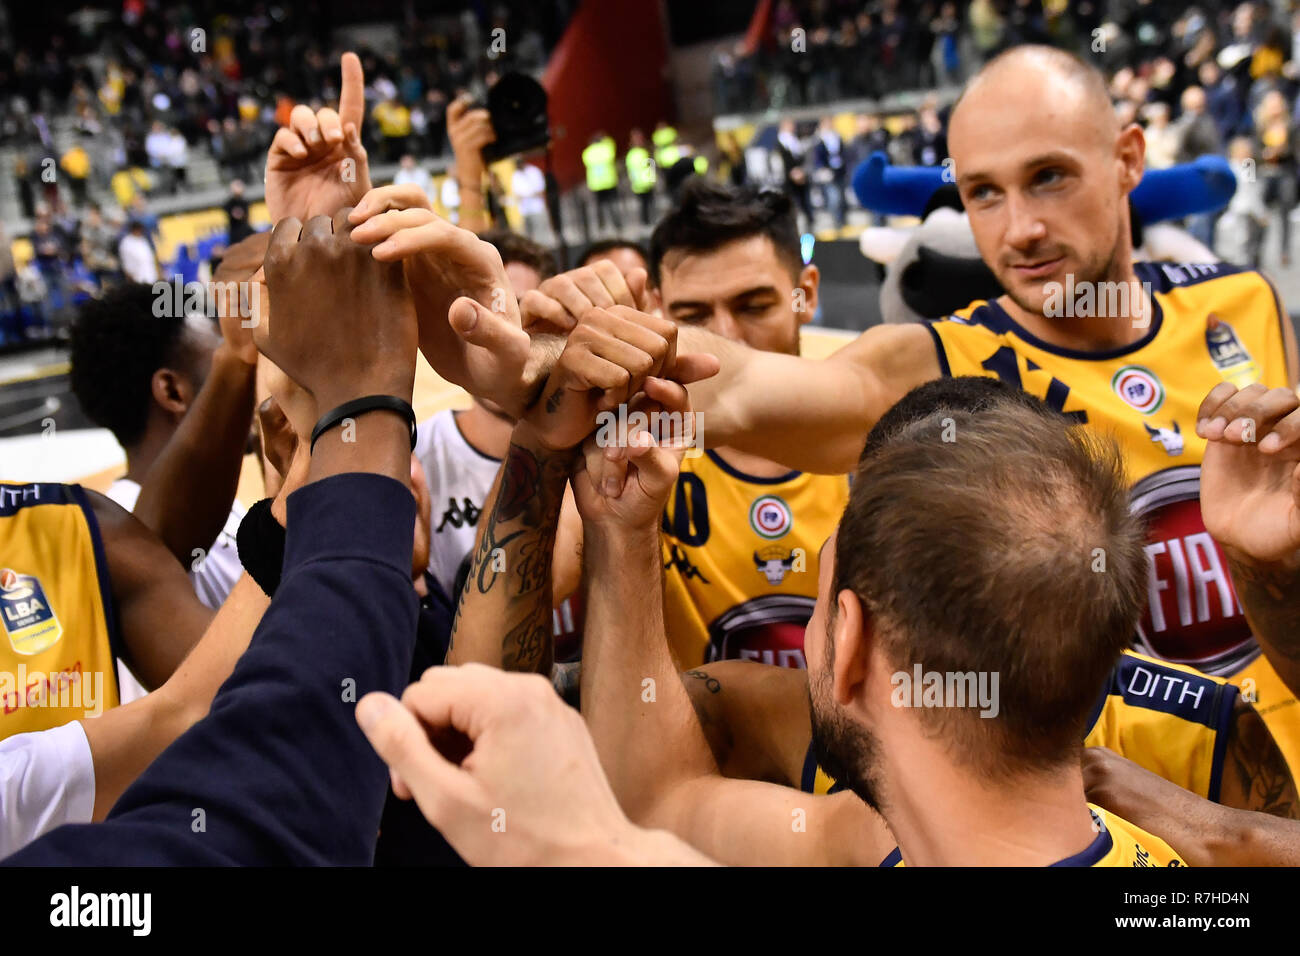 Turin, Italy. 8th Dec 2018. During the LEGA BASKET SERIE A 2018/19 basketball match between FIAT AUXILIUM TORINO vs DOLOMITI TRENTO at PalaVela on 8th Dicember, 2018 in Turin, Italy. Credit: FABIO PETROSINO/Alamy Live News - Stock Image